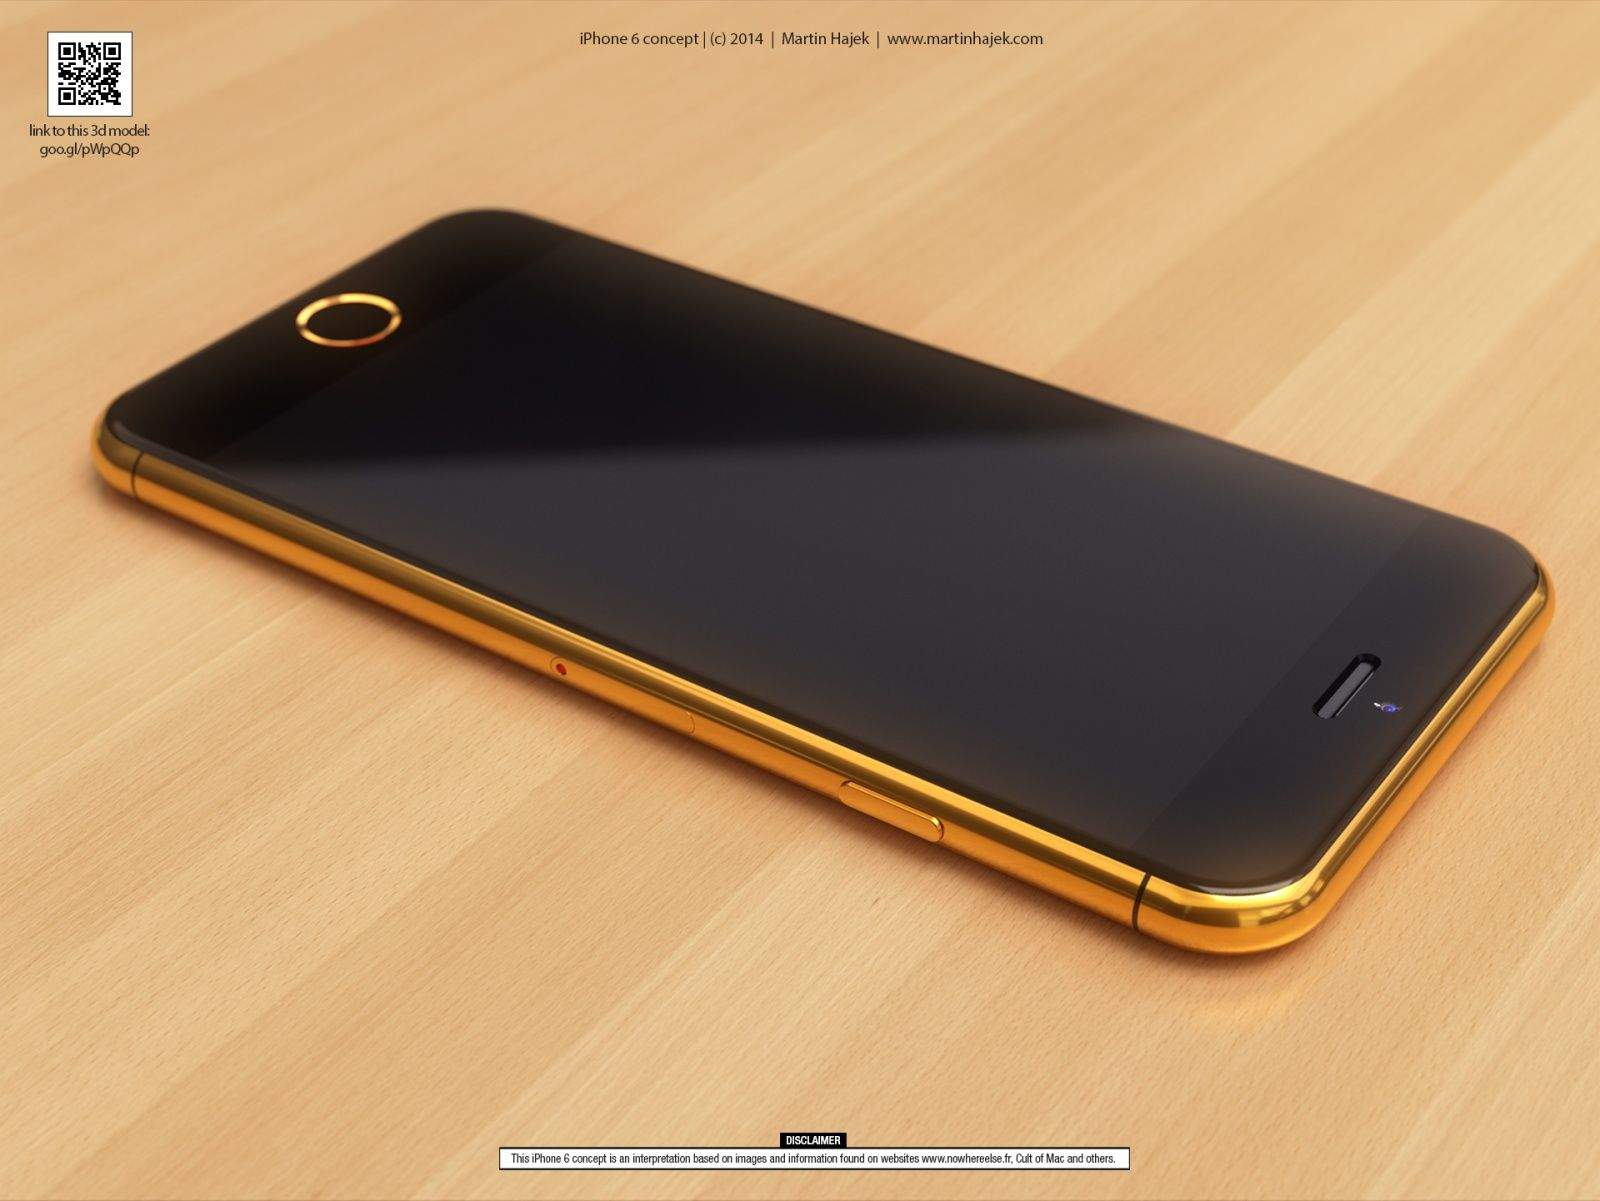 Kanye Would Buy This Gold IPhone 6 In A Heartbeat